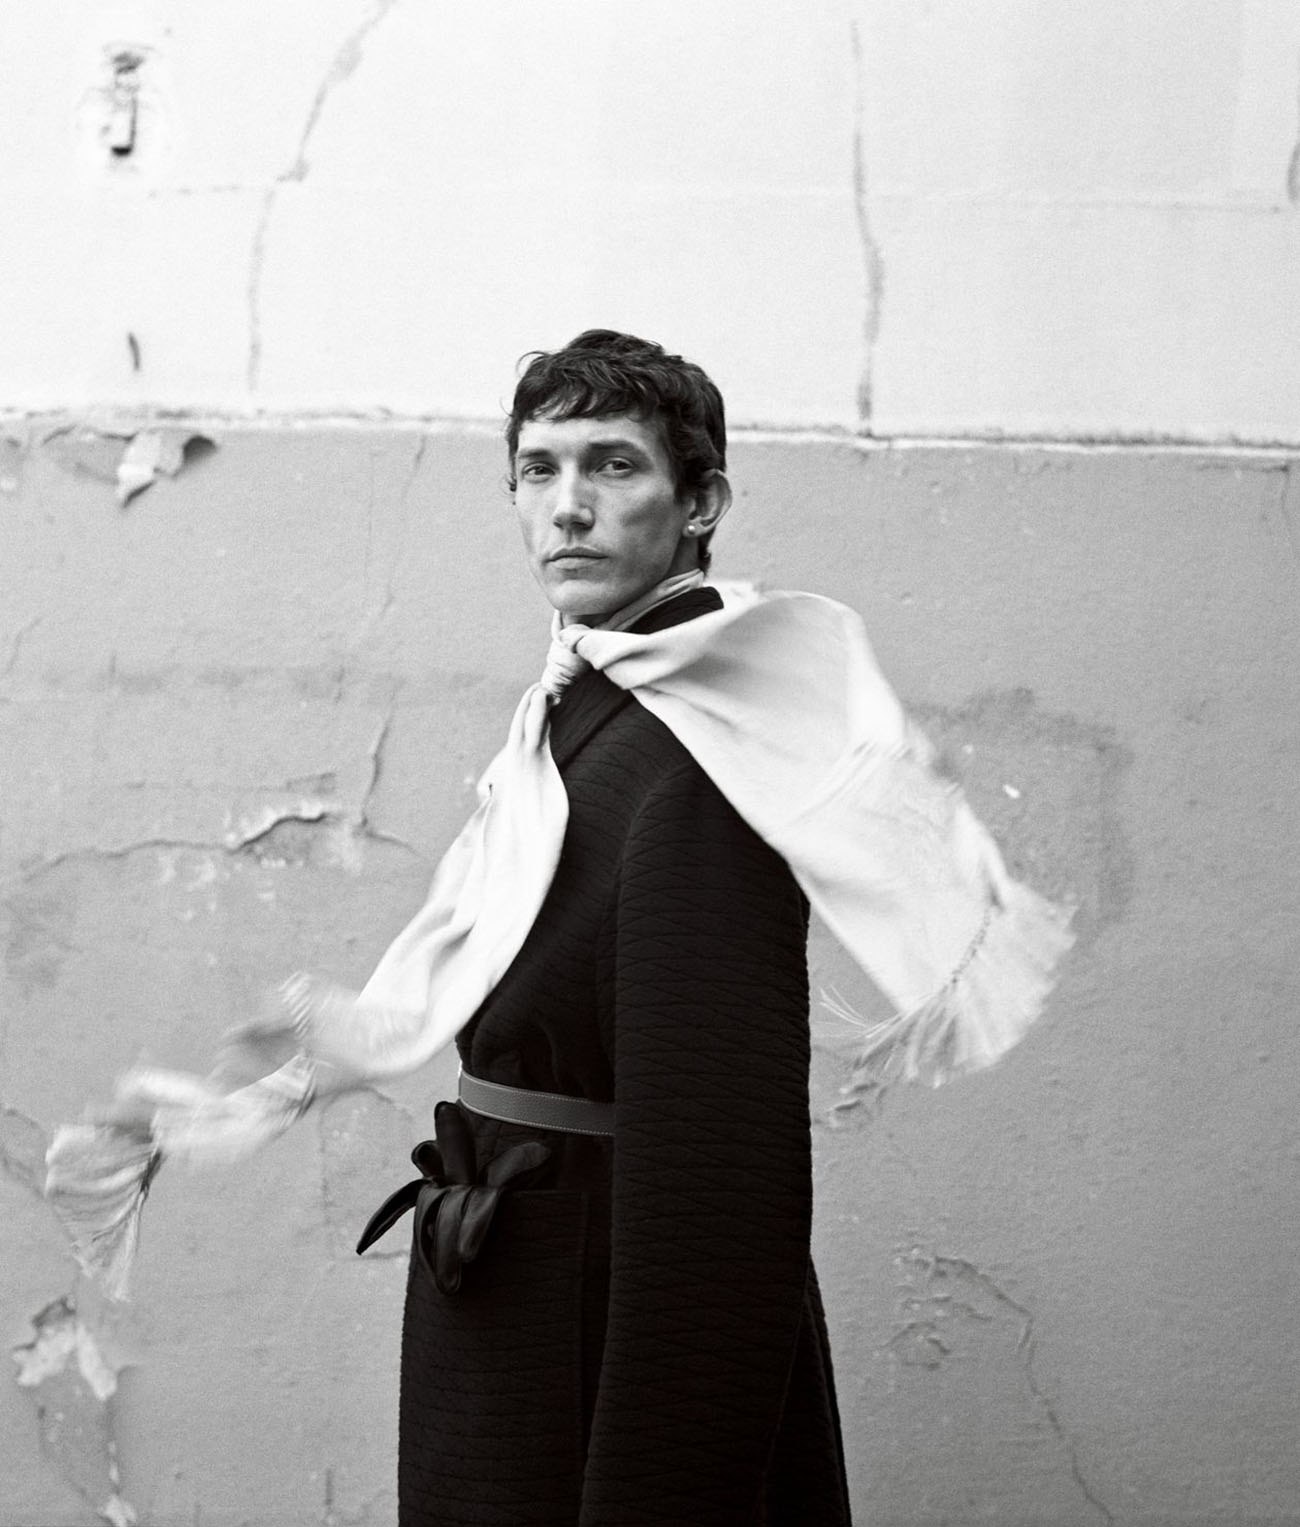 Thilo Muller by Olivier Kervern for WSJ. Magazine November 2020